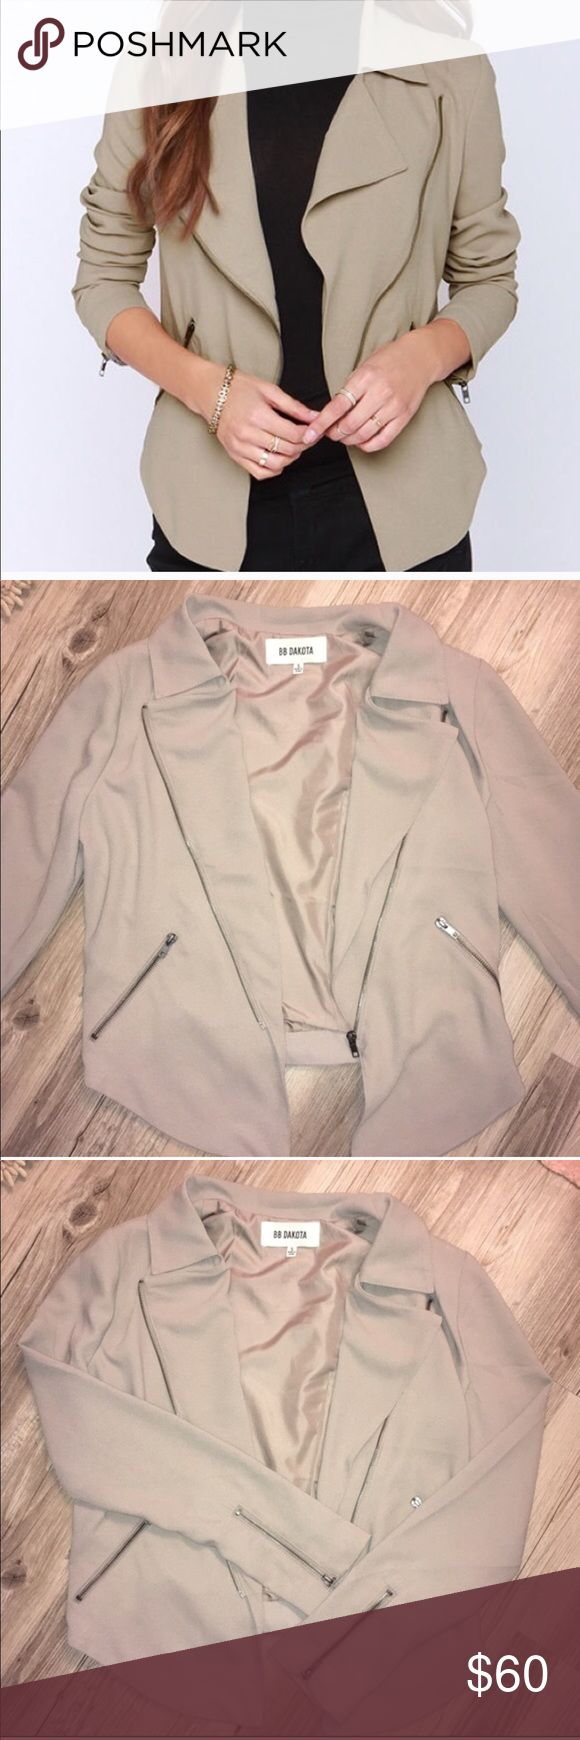 BB Dakota Jacket NWOT! Bought from another posher and is too big for me  Beautiful jacket - perfect for fall and winter nights out! BB Dakota Jackets & Coats